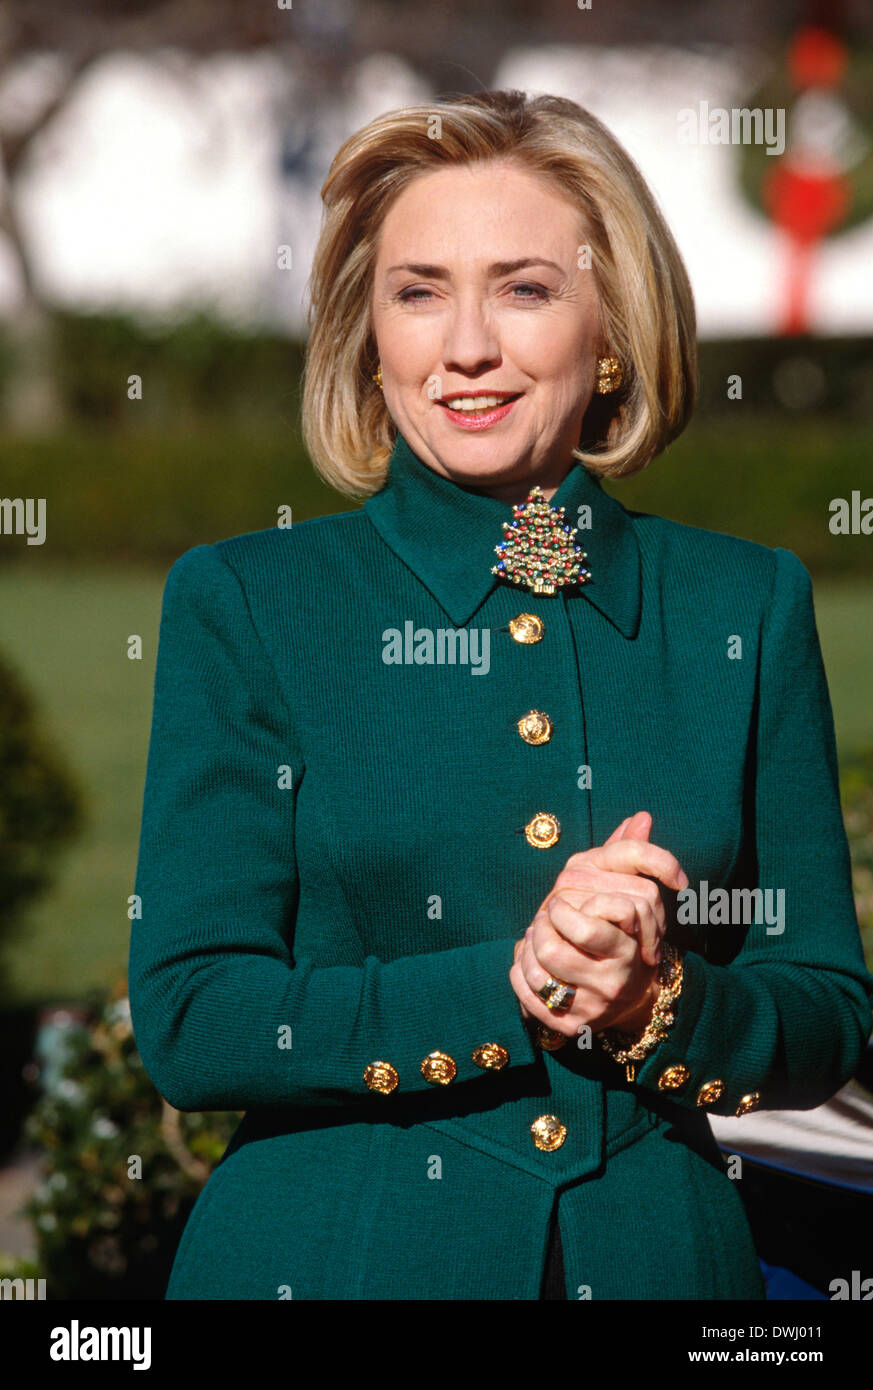 US First Lady Hillary Clinton participates in MADD's Christmas ...